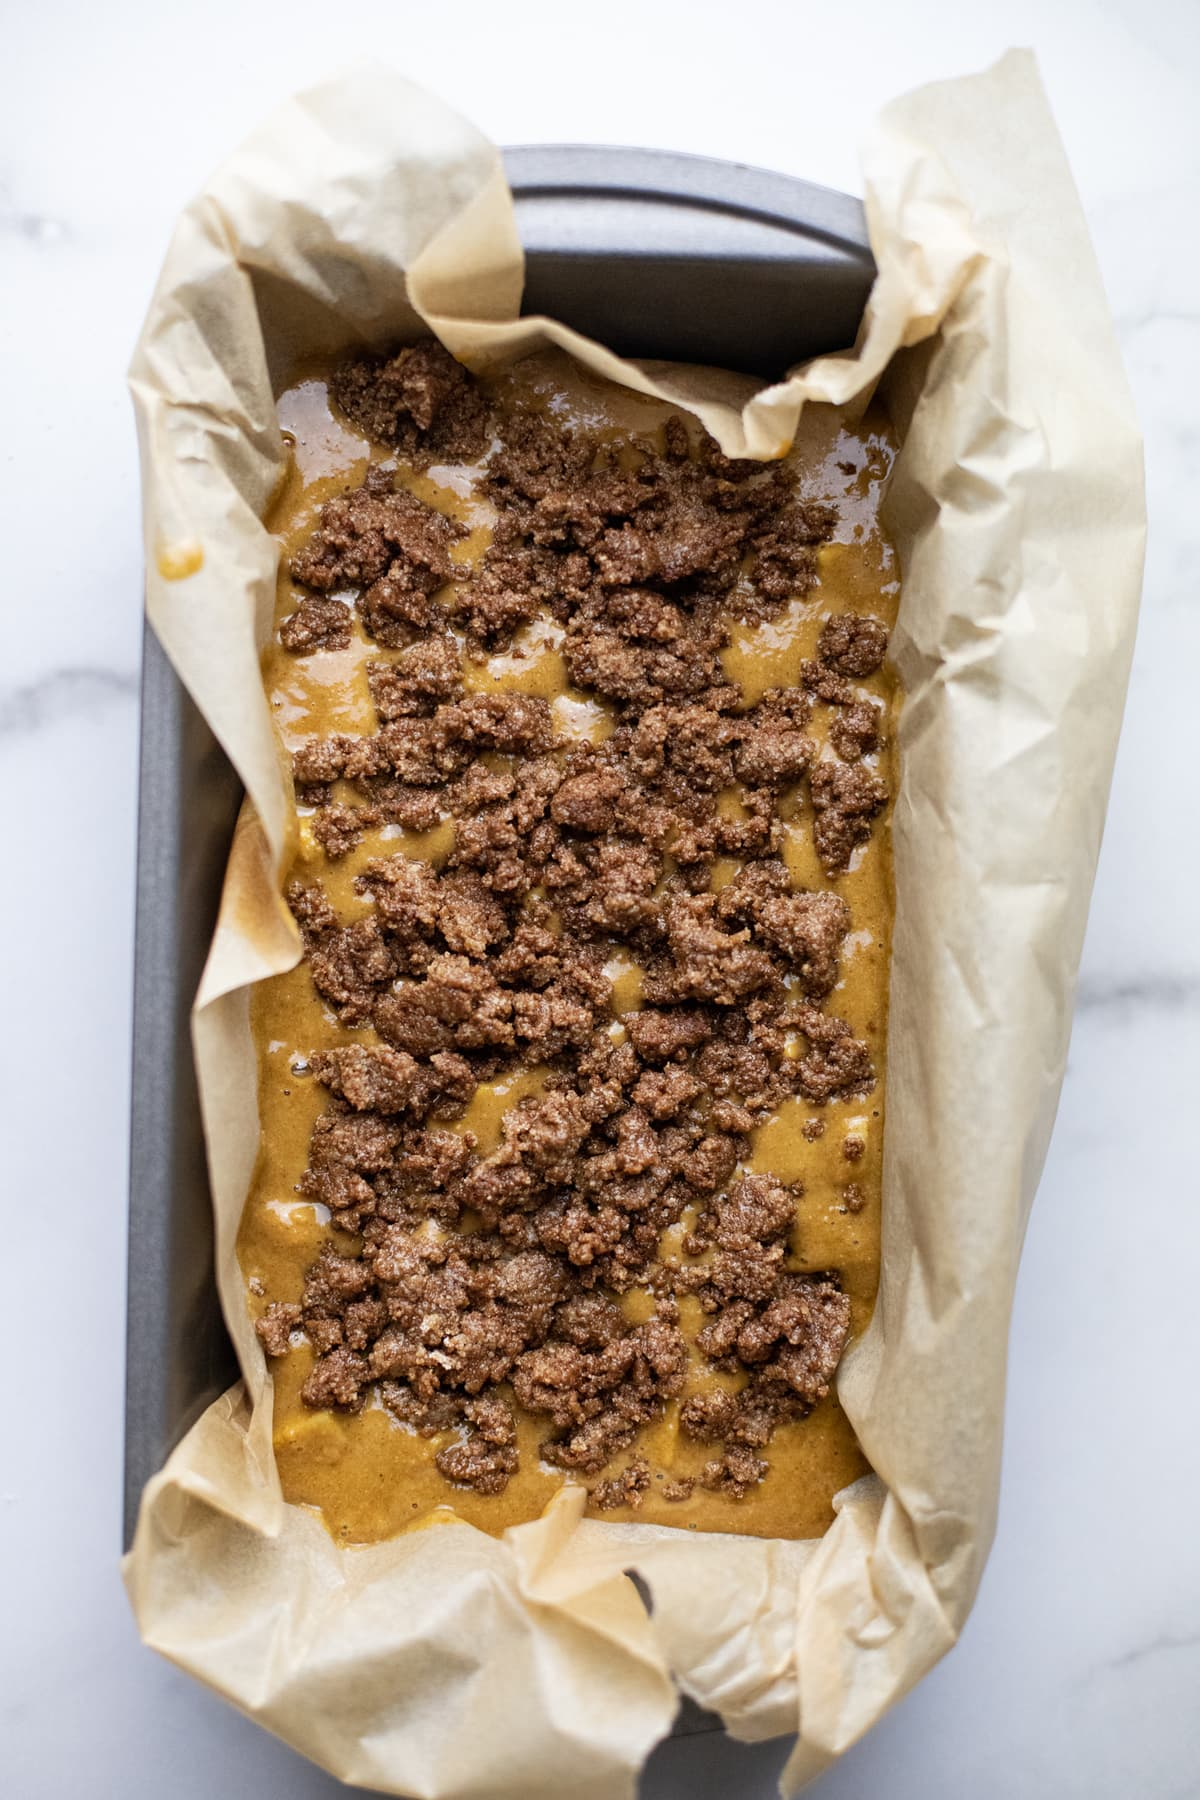 Apple cake batter in a pan lined with parchment paper.